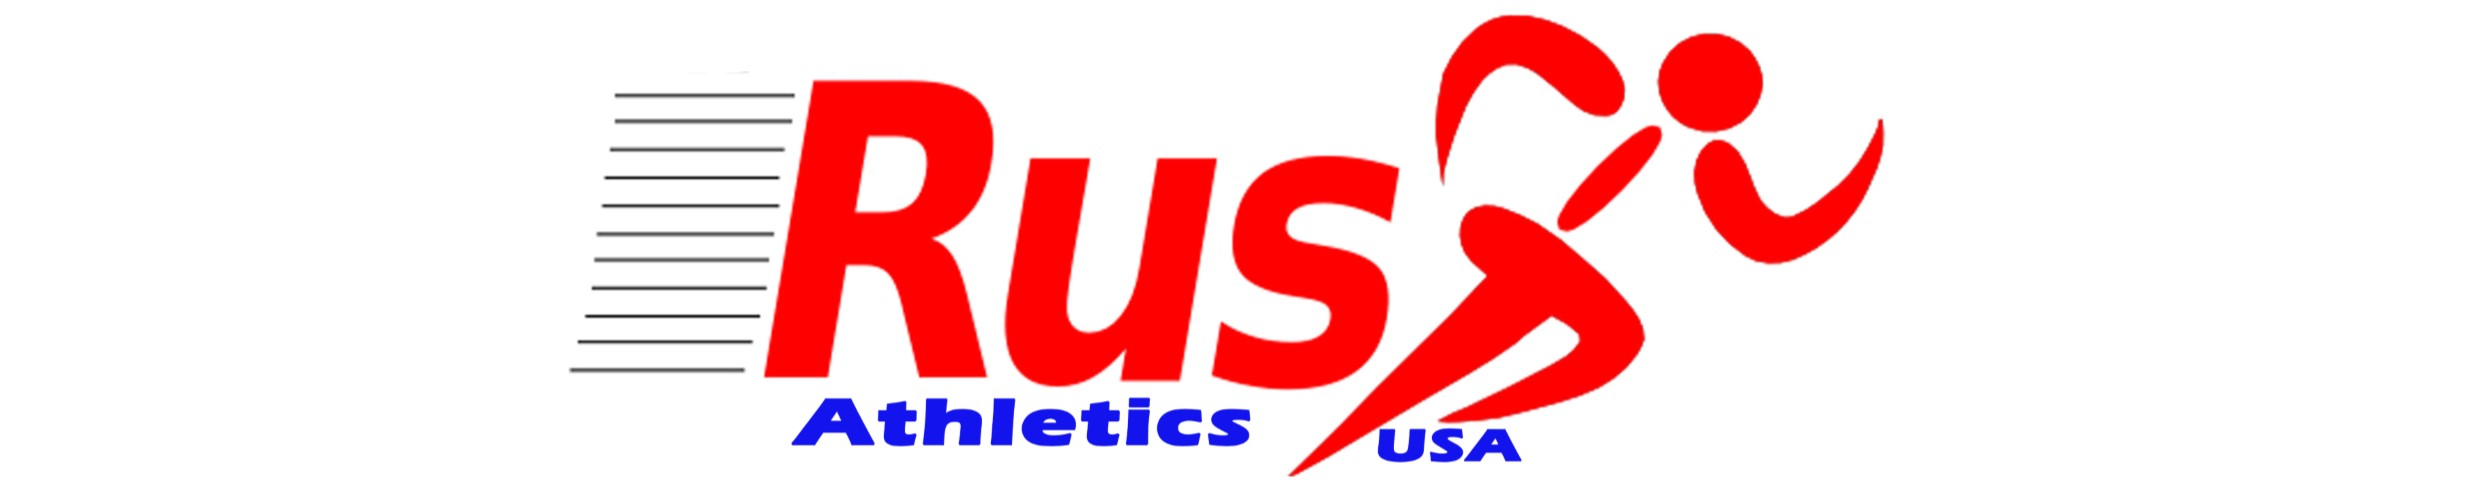 Rush Athletics USA, Track & Field, Goal, Field